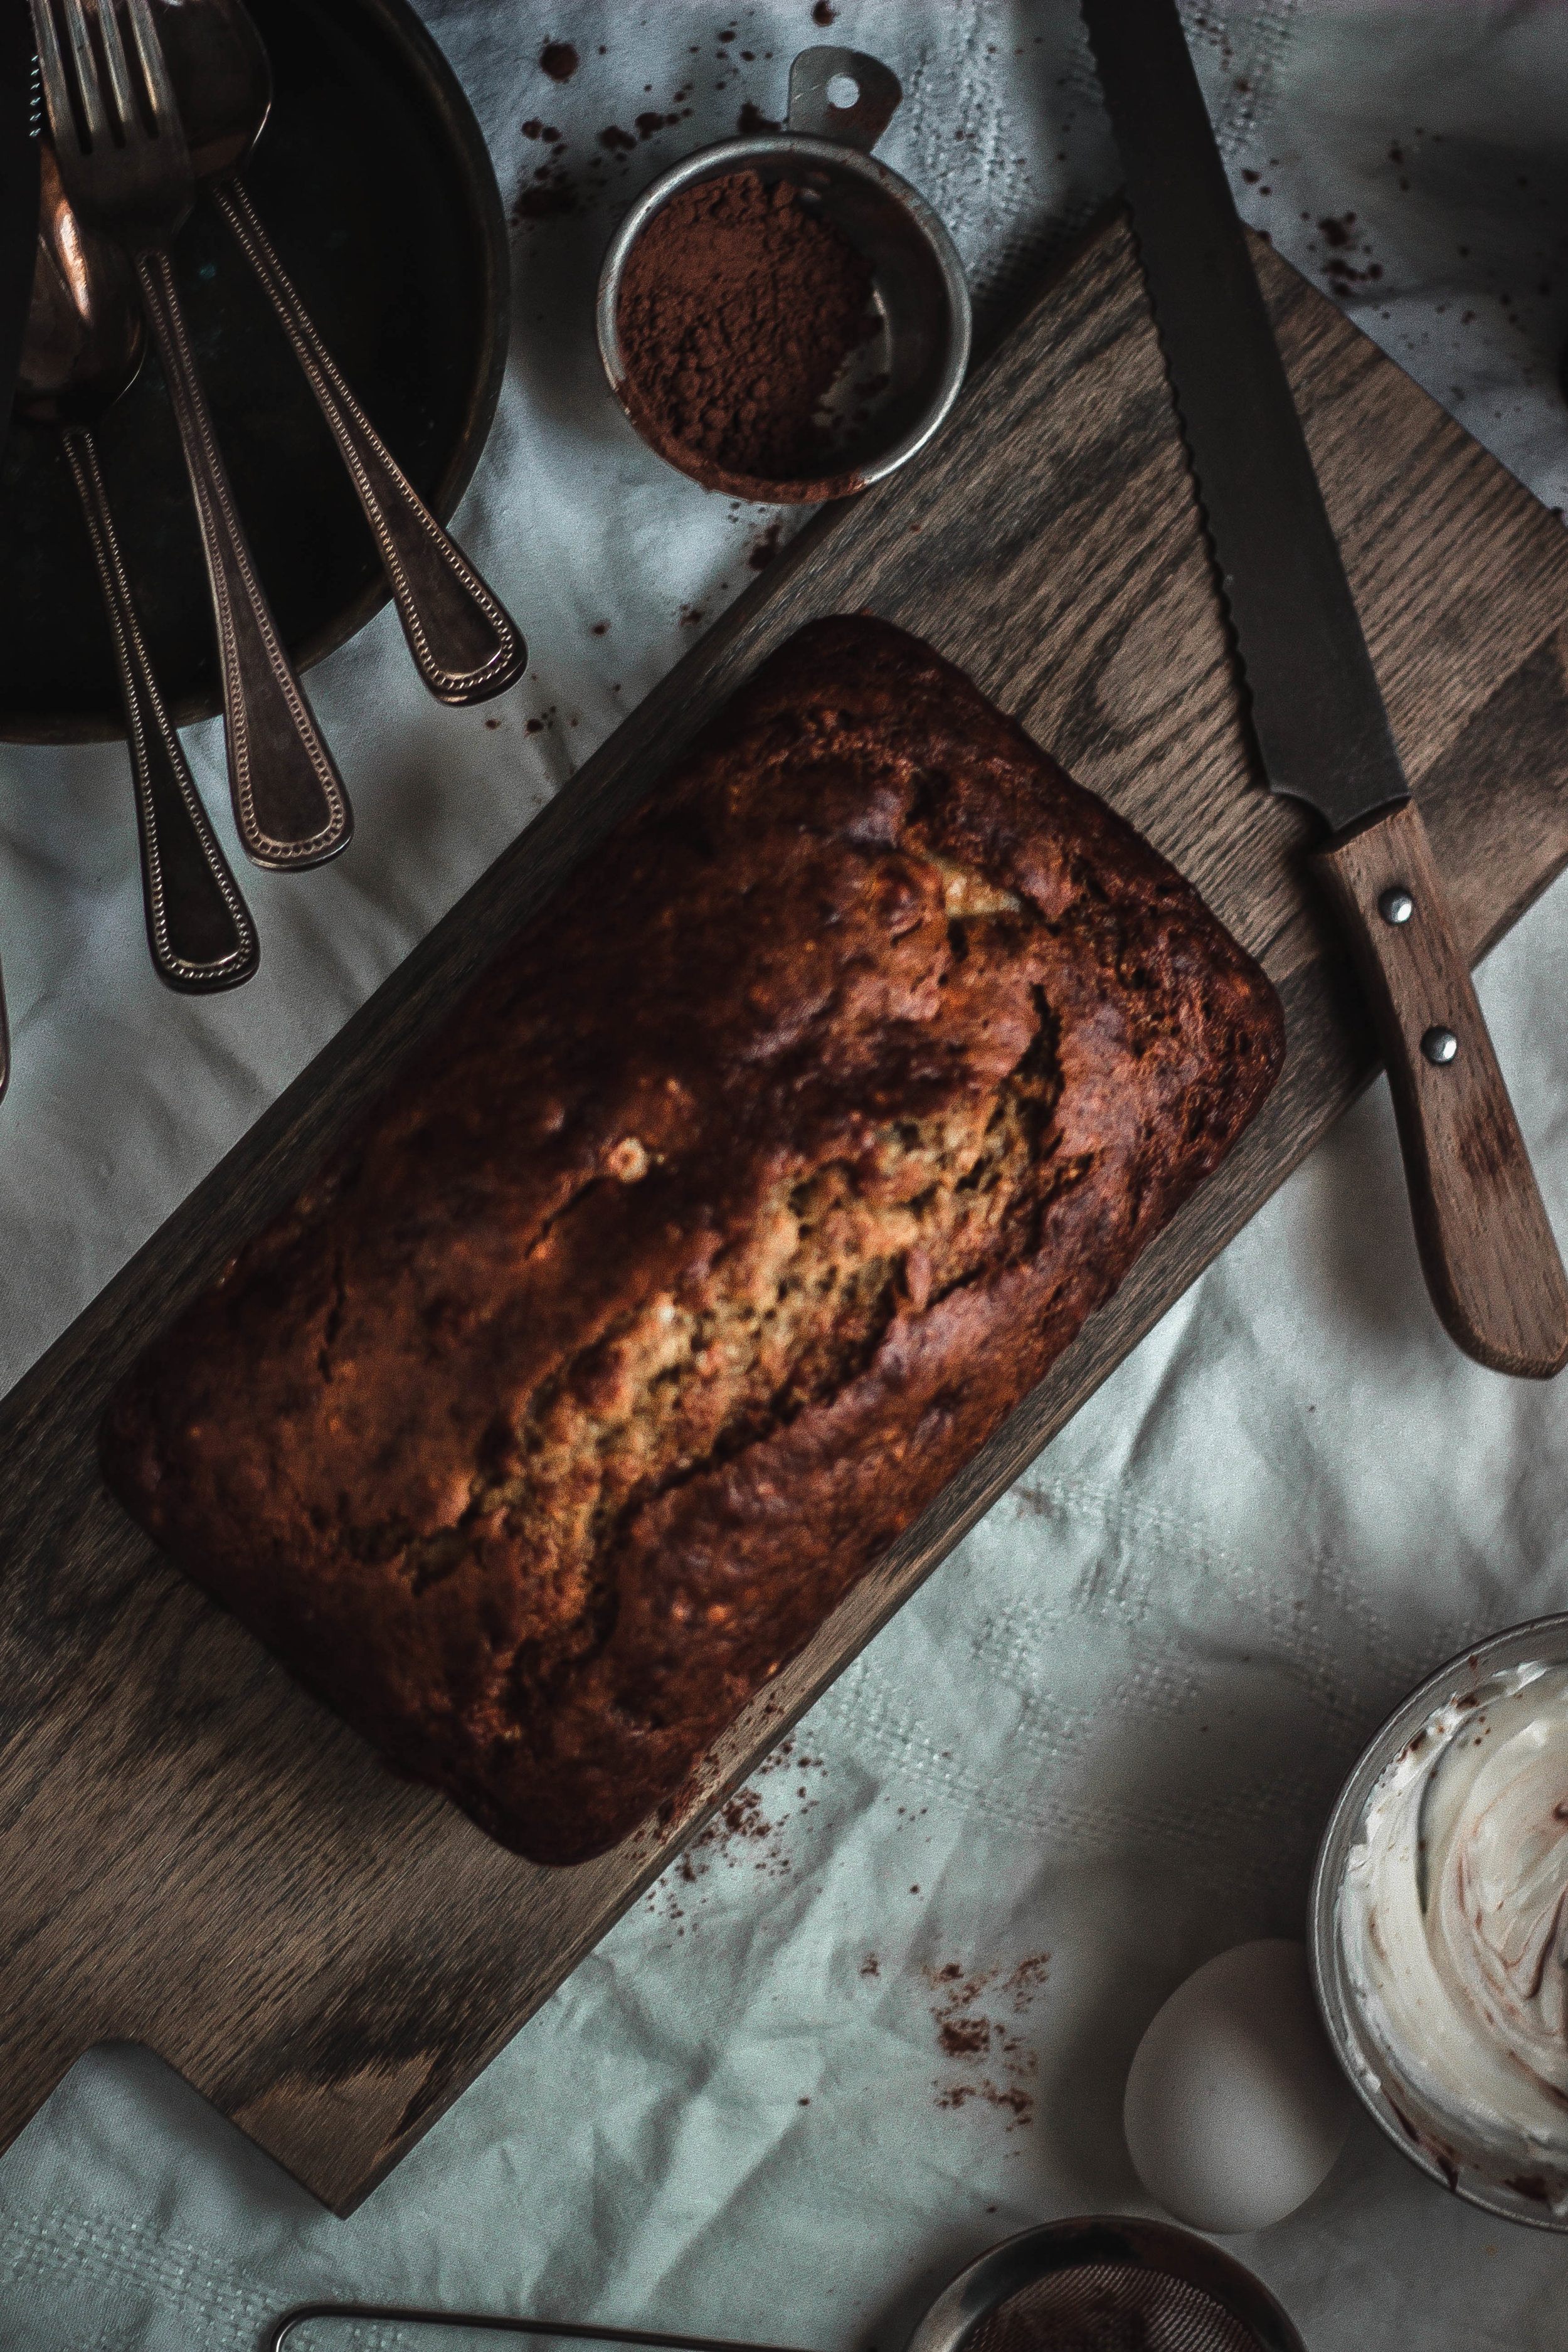 Super moist banana bread recipe and how to make chocolate glaze that hardens | from scratch, mostly